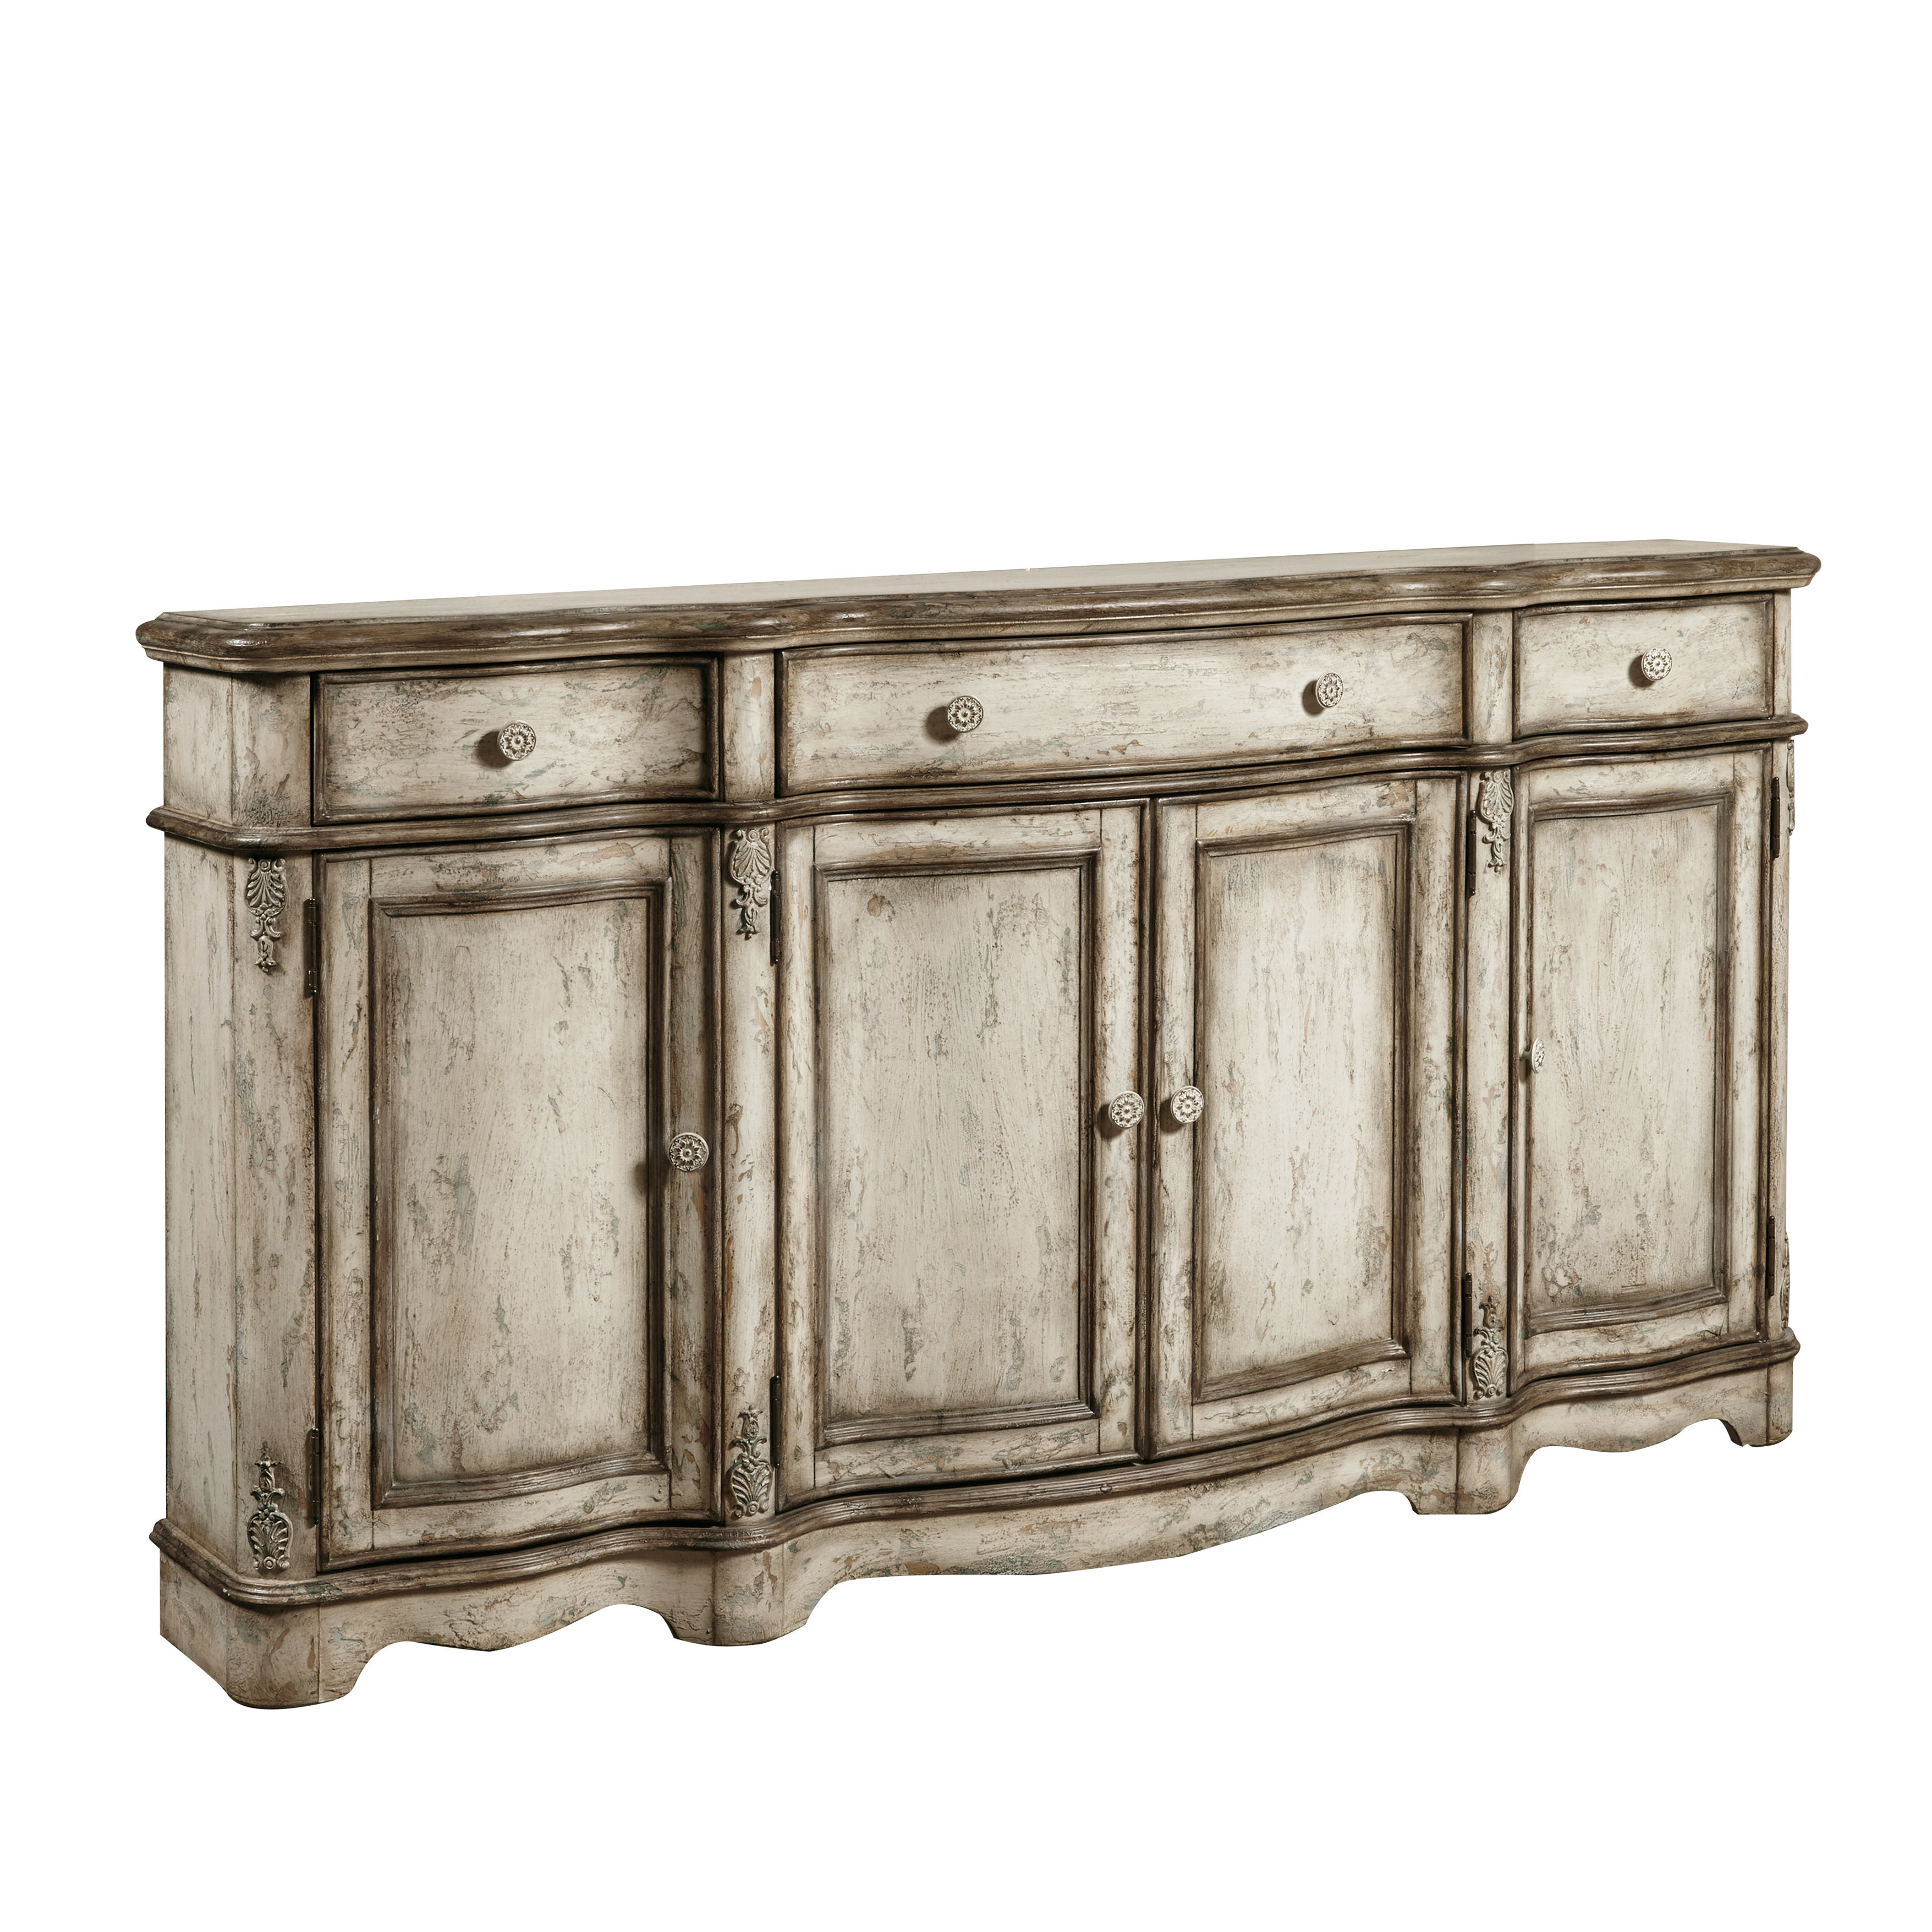 Farmhouse & Rustic Sideboards & Buffets | Birch Lane With Regard To Raunds Sideboards (View 6 of 20)